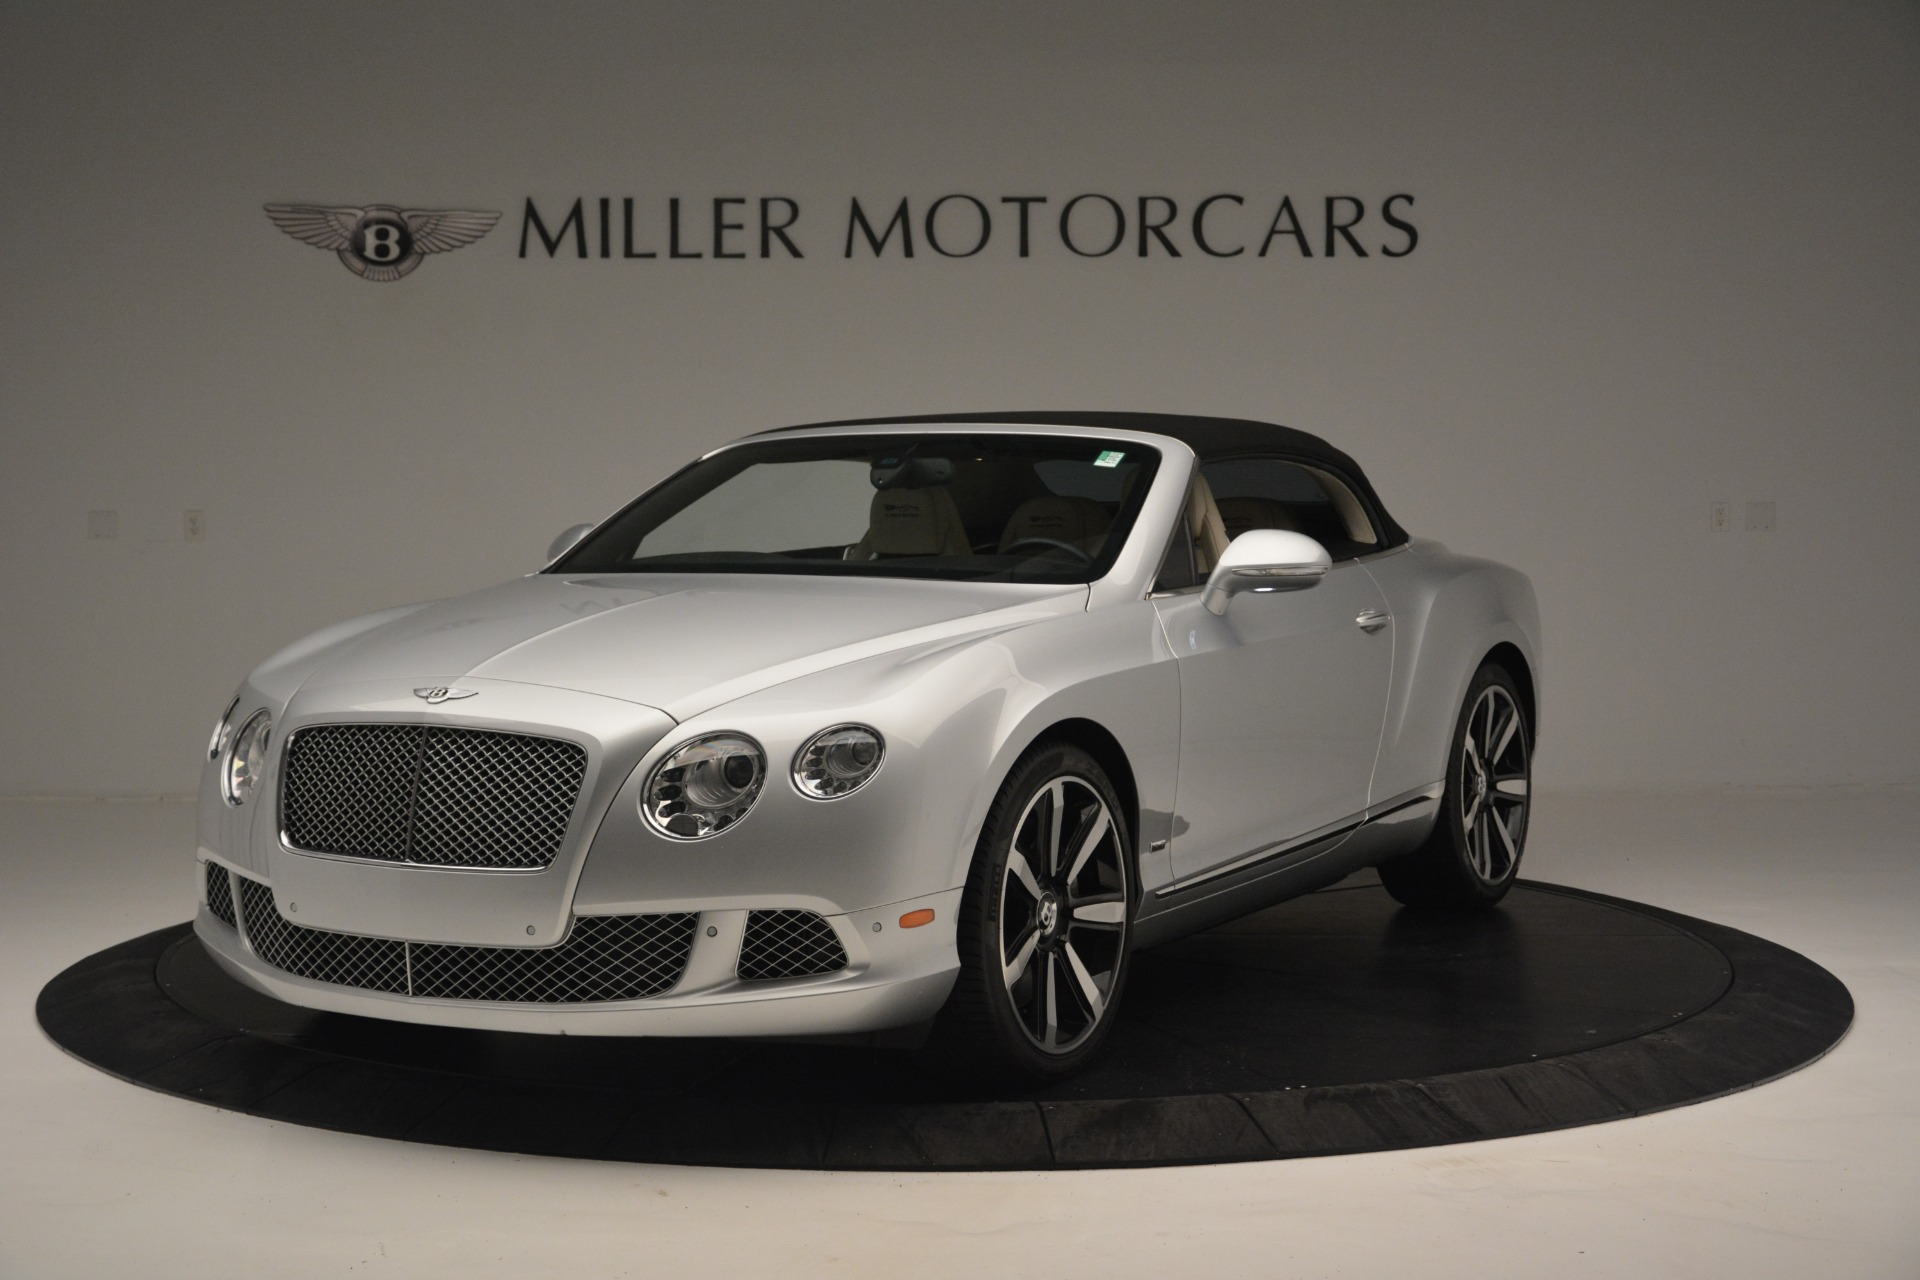 Used 2013 Bentley Continental GT W12 Le Mans Edition For Sale In Greenwich, CT 2519_p10